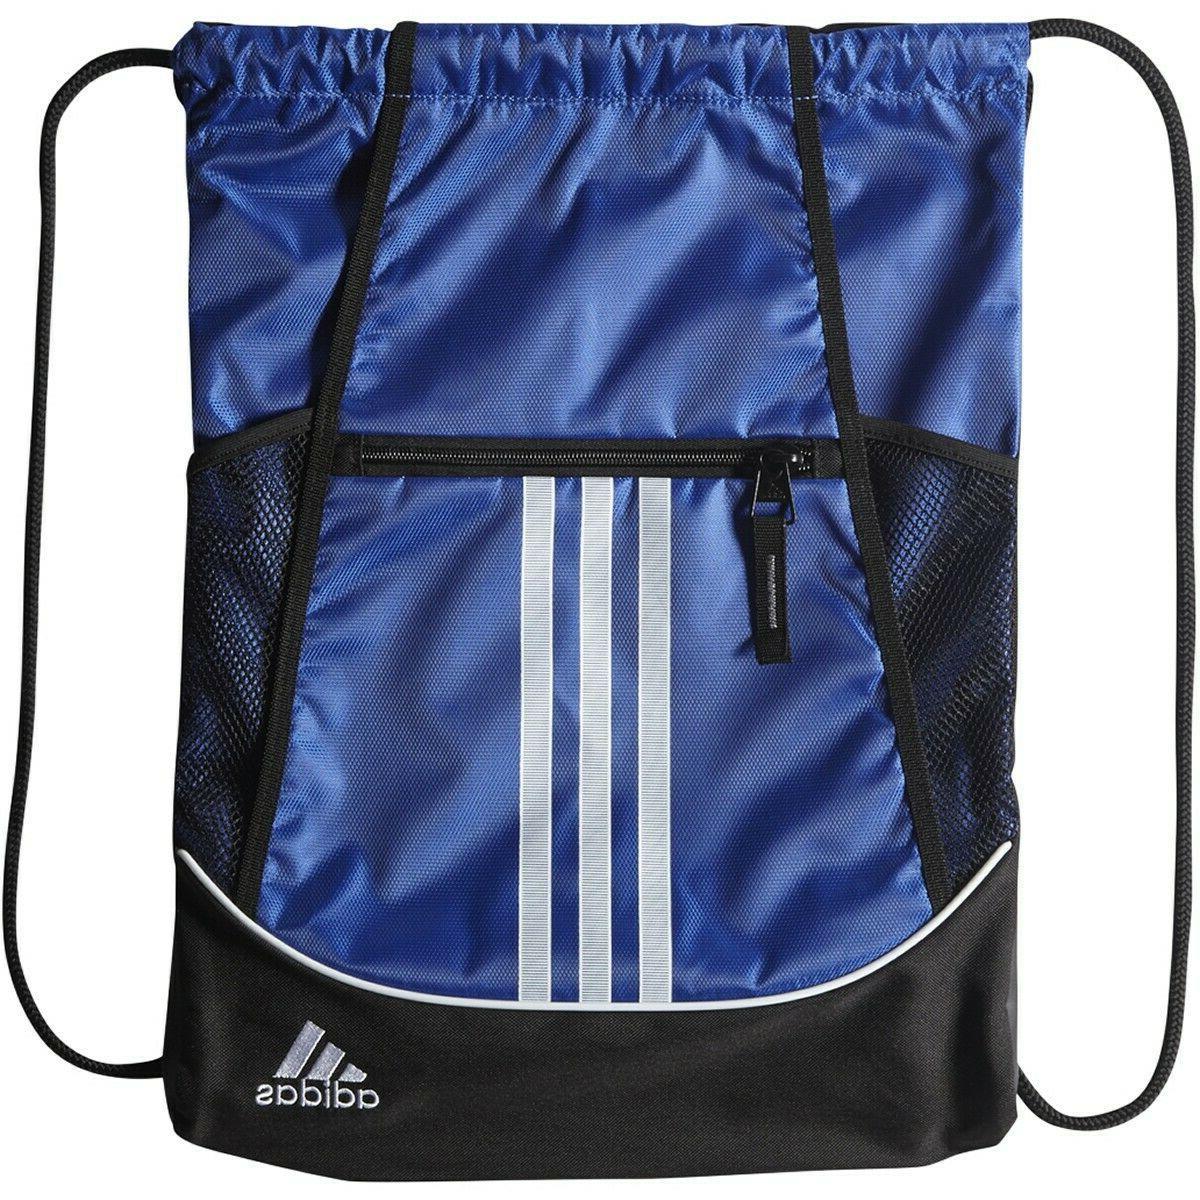 NEW adidas Alliance Sackpack Drawstring Bag All Colors